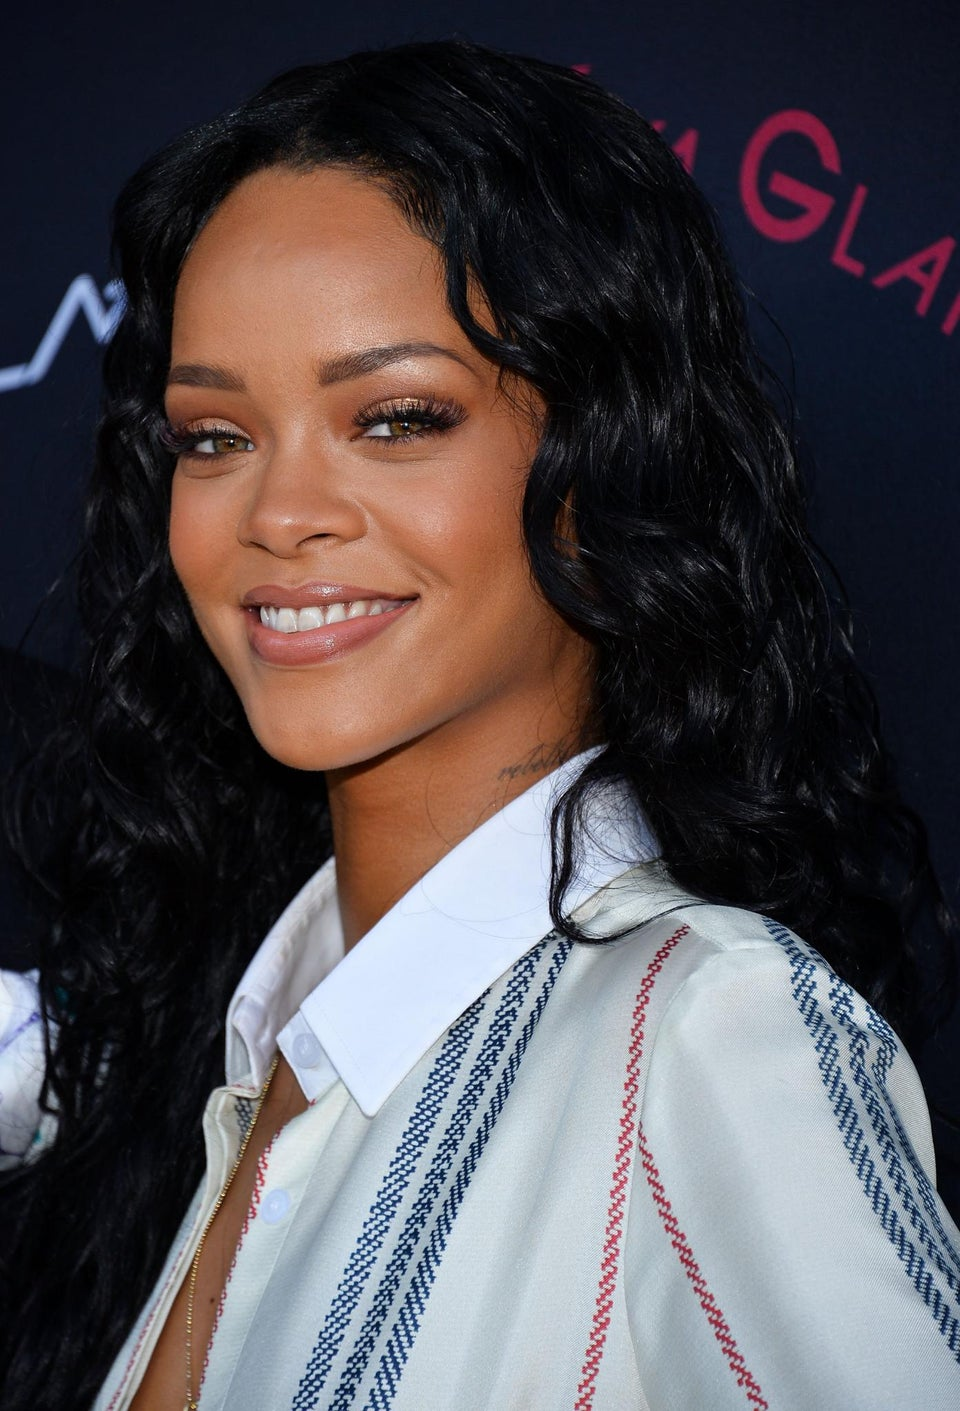 Rihanna To Star In 3D Animated Film